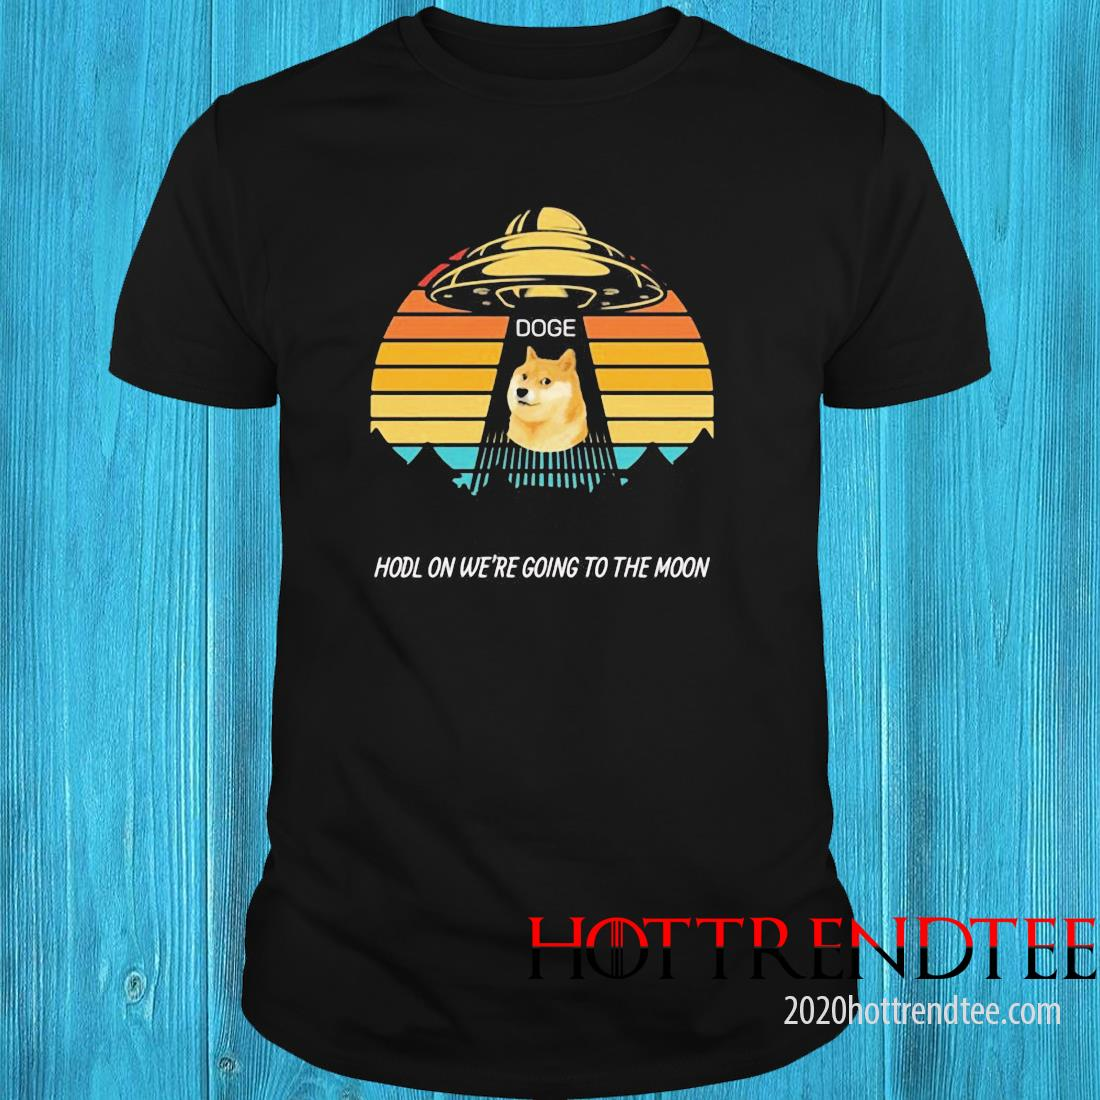 Dogecoin Shirt Hold On We're Going To The Moon Crypto Vintage Shirt